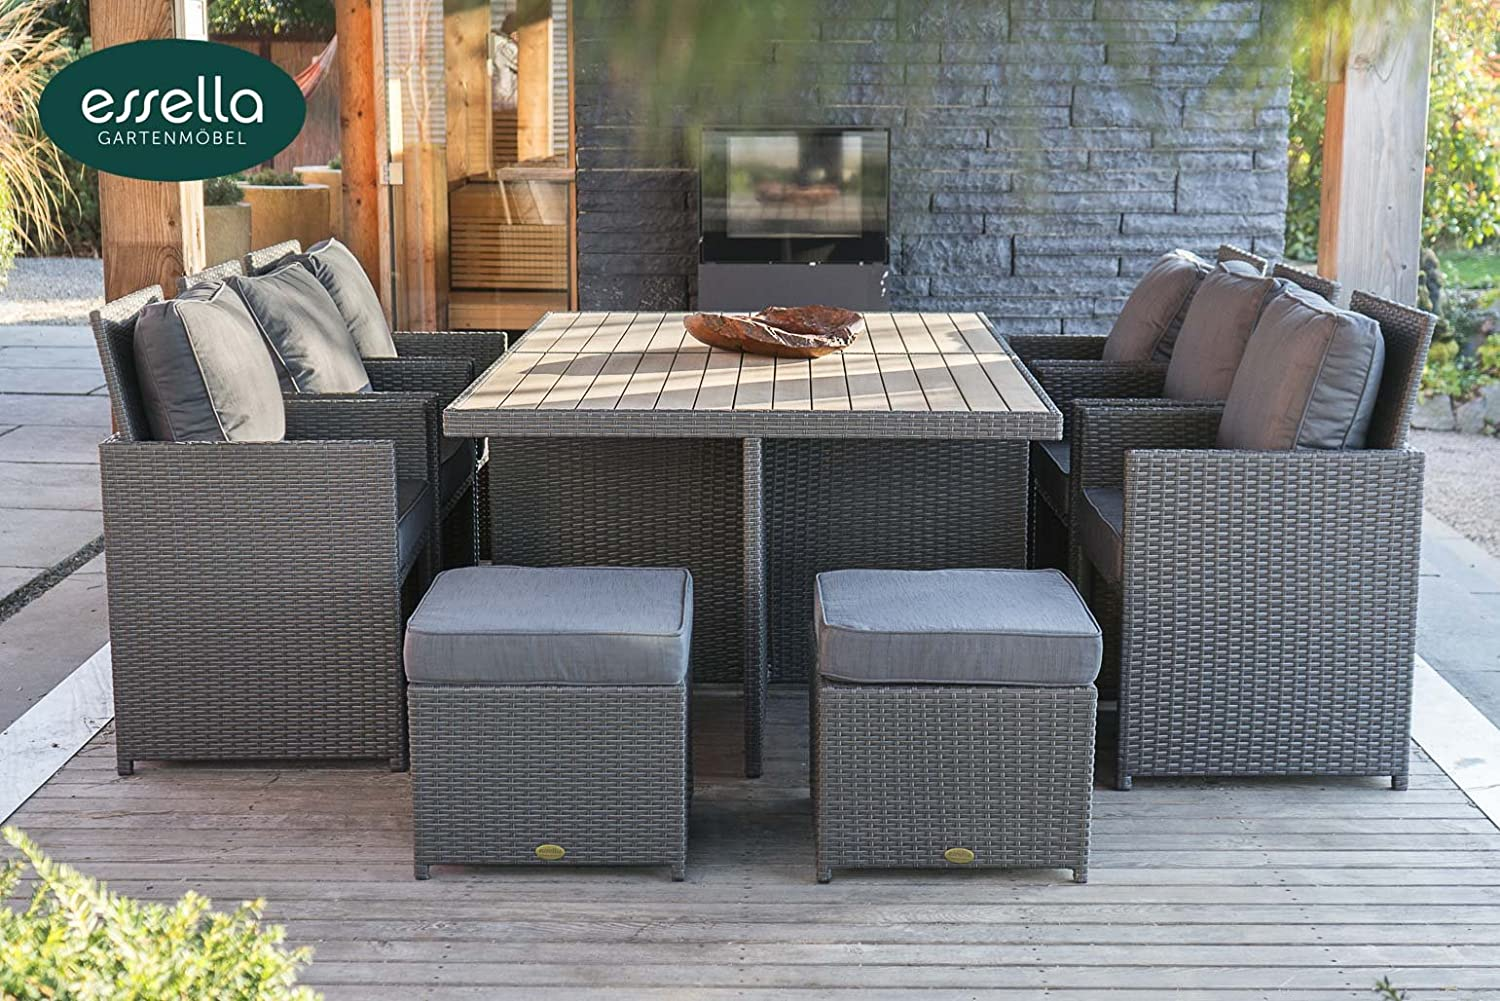 polyrattan sitzgruppe vienna 6 personen polywood flachgeflecht grau gartenm bel. Black Bedroom Furniture Sets. Home Design Ideas